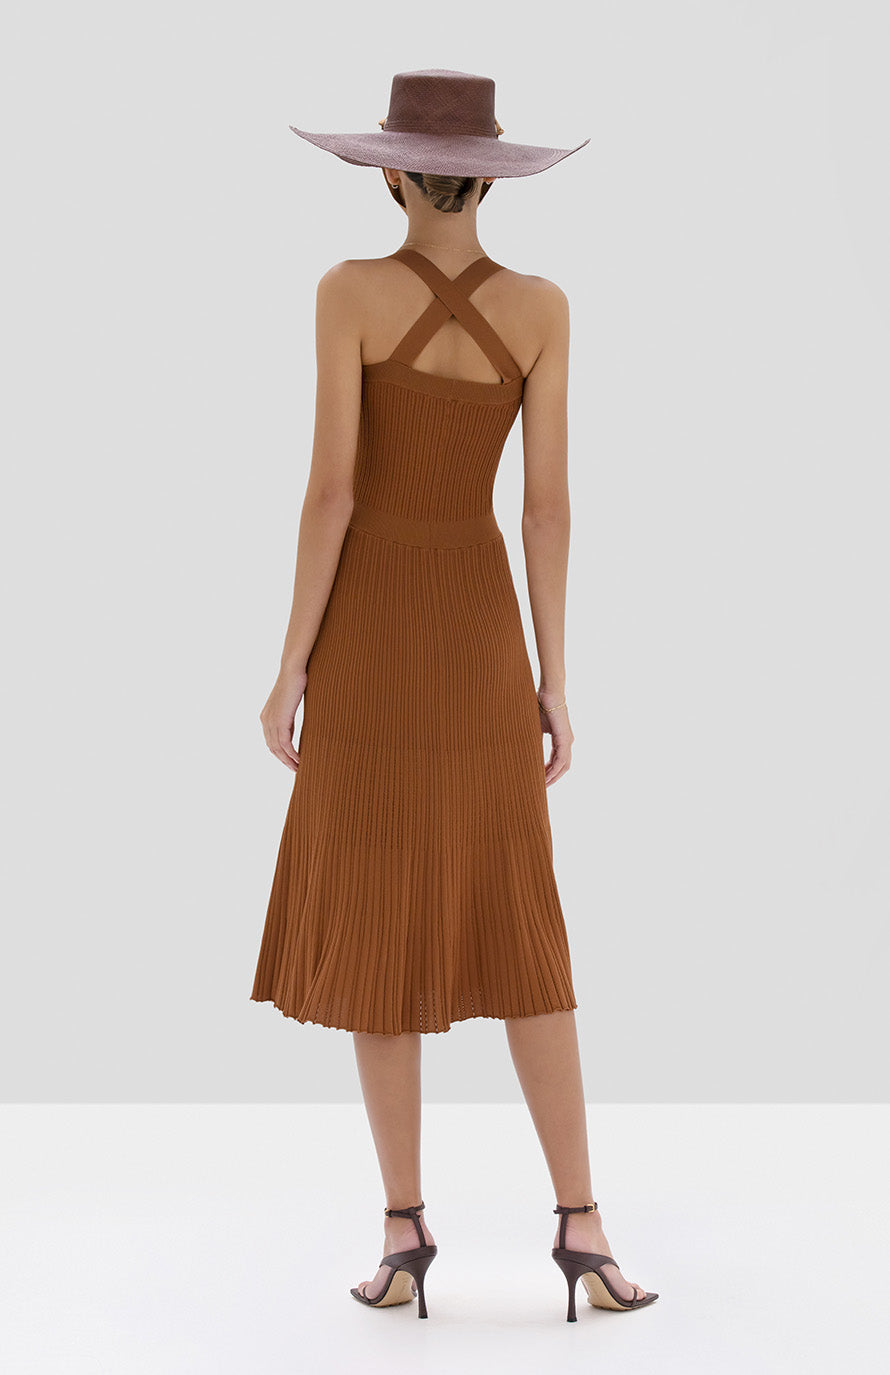 Alexis Bess Dress in Rust from the Spring Summer 2020 Collection - Rear View